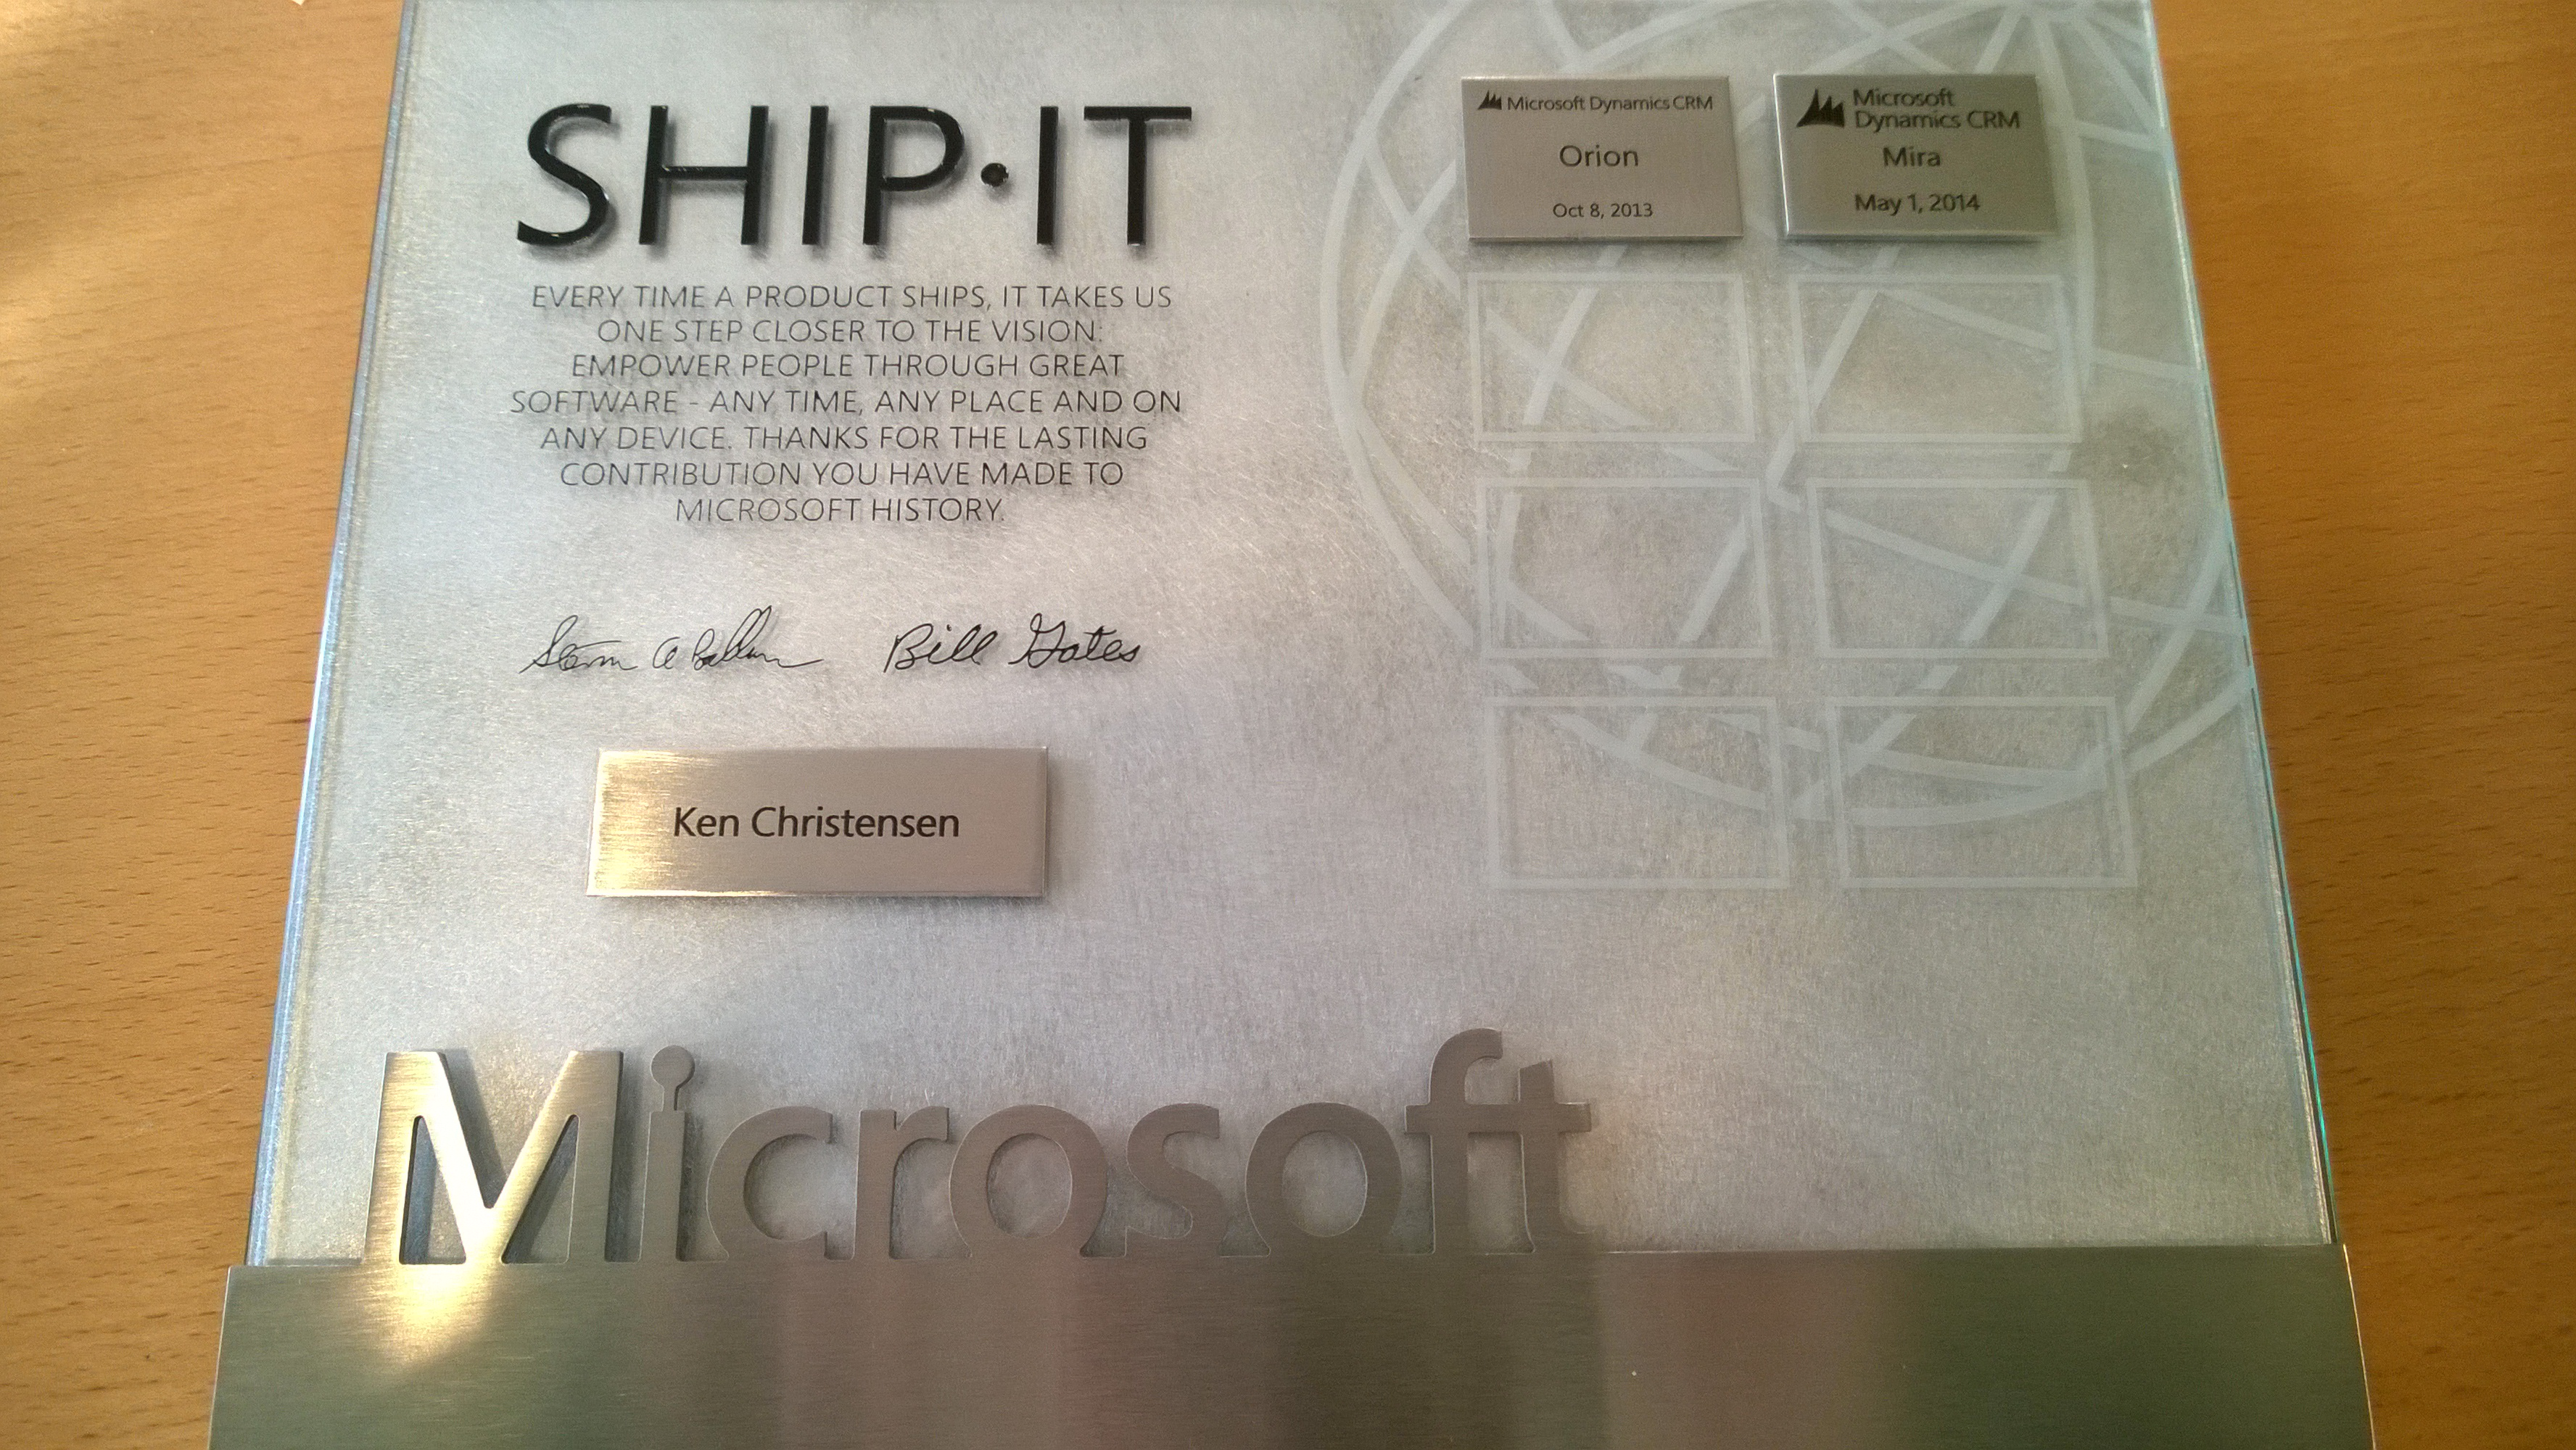 Ship-it plate and tags